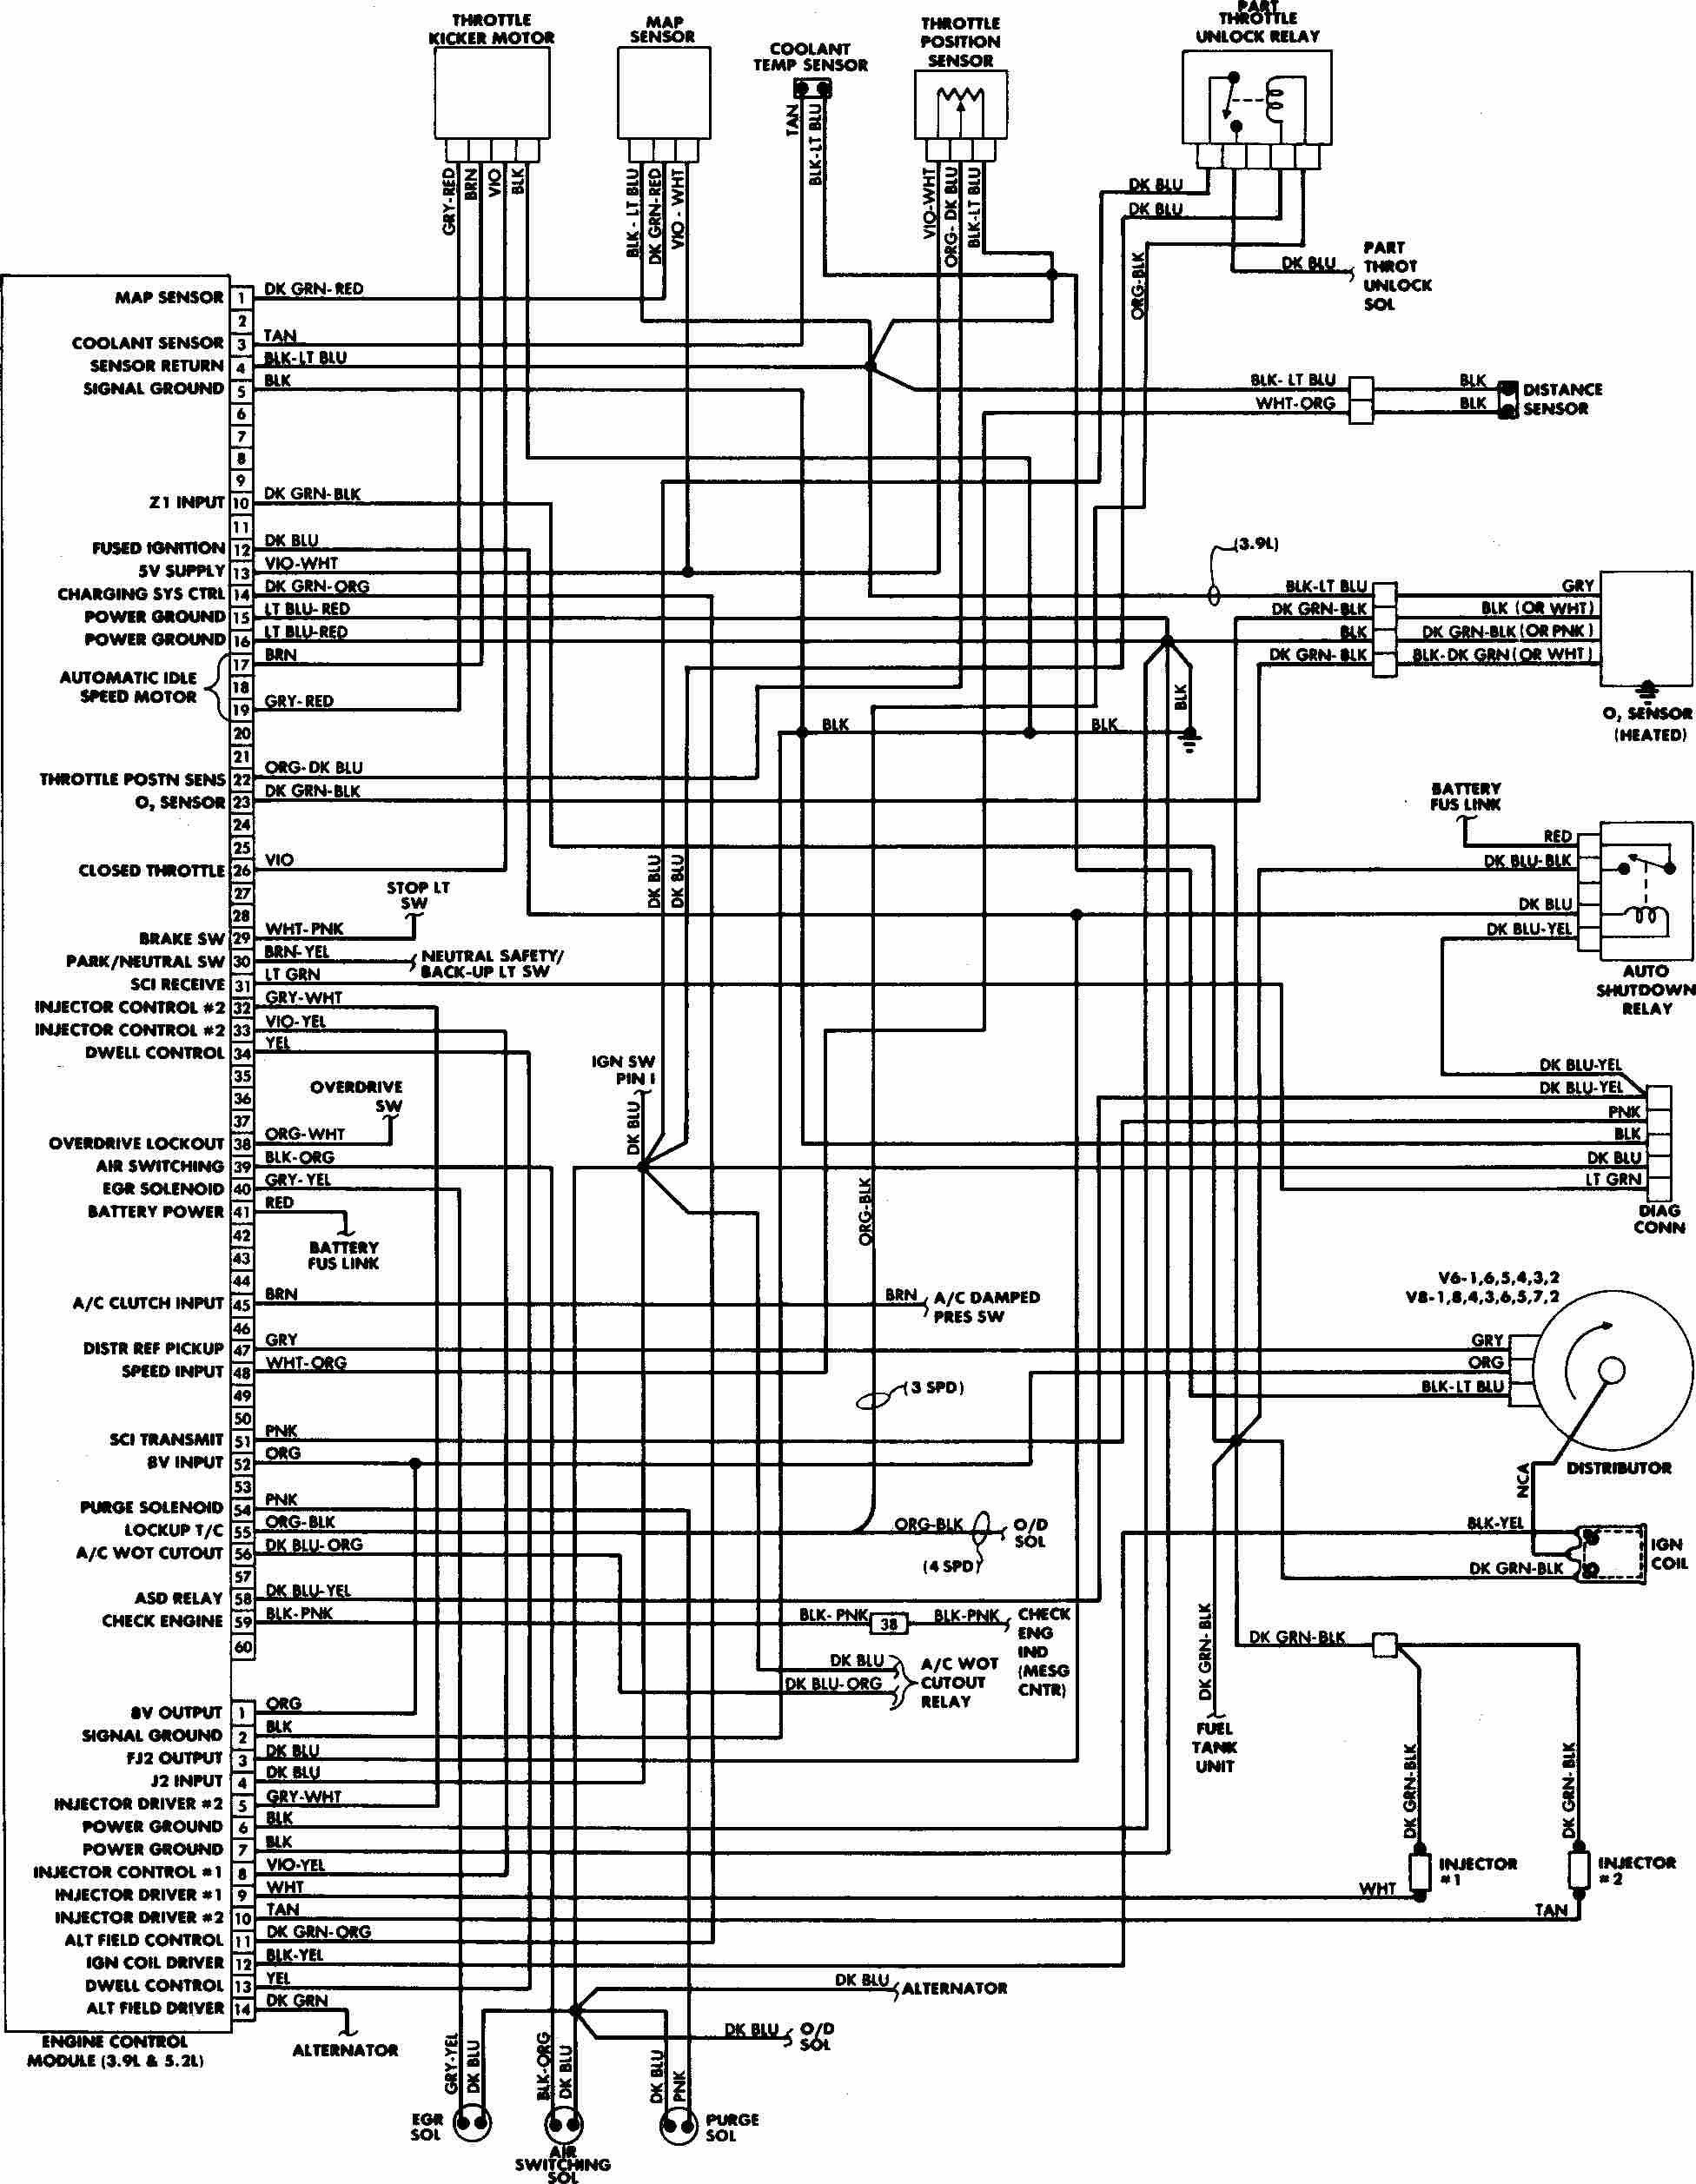 2000 Dodge Durango Engine Diagram